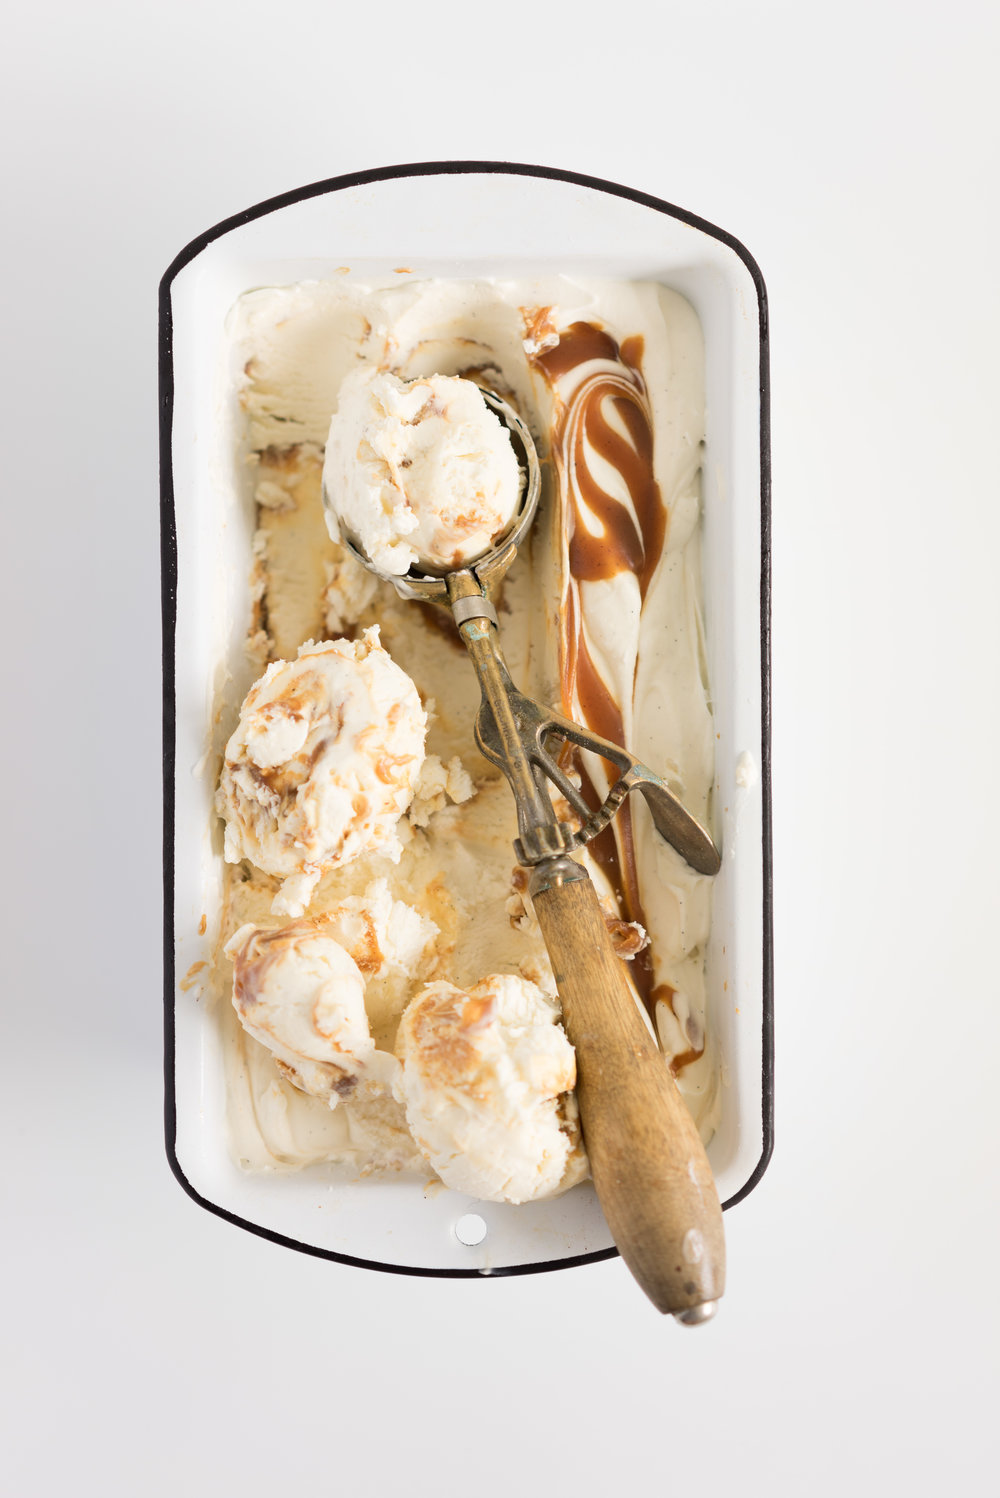 Salted Caramel No churn Ice Cream - creamy vanilla no churn ice cream is swirled with a spiced salted caramel ripple. A fancy wee twist on everyone's favourite no-churn recipe #nochurn #icecream #saltedcaramel #caramel #vanilla #nochurn